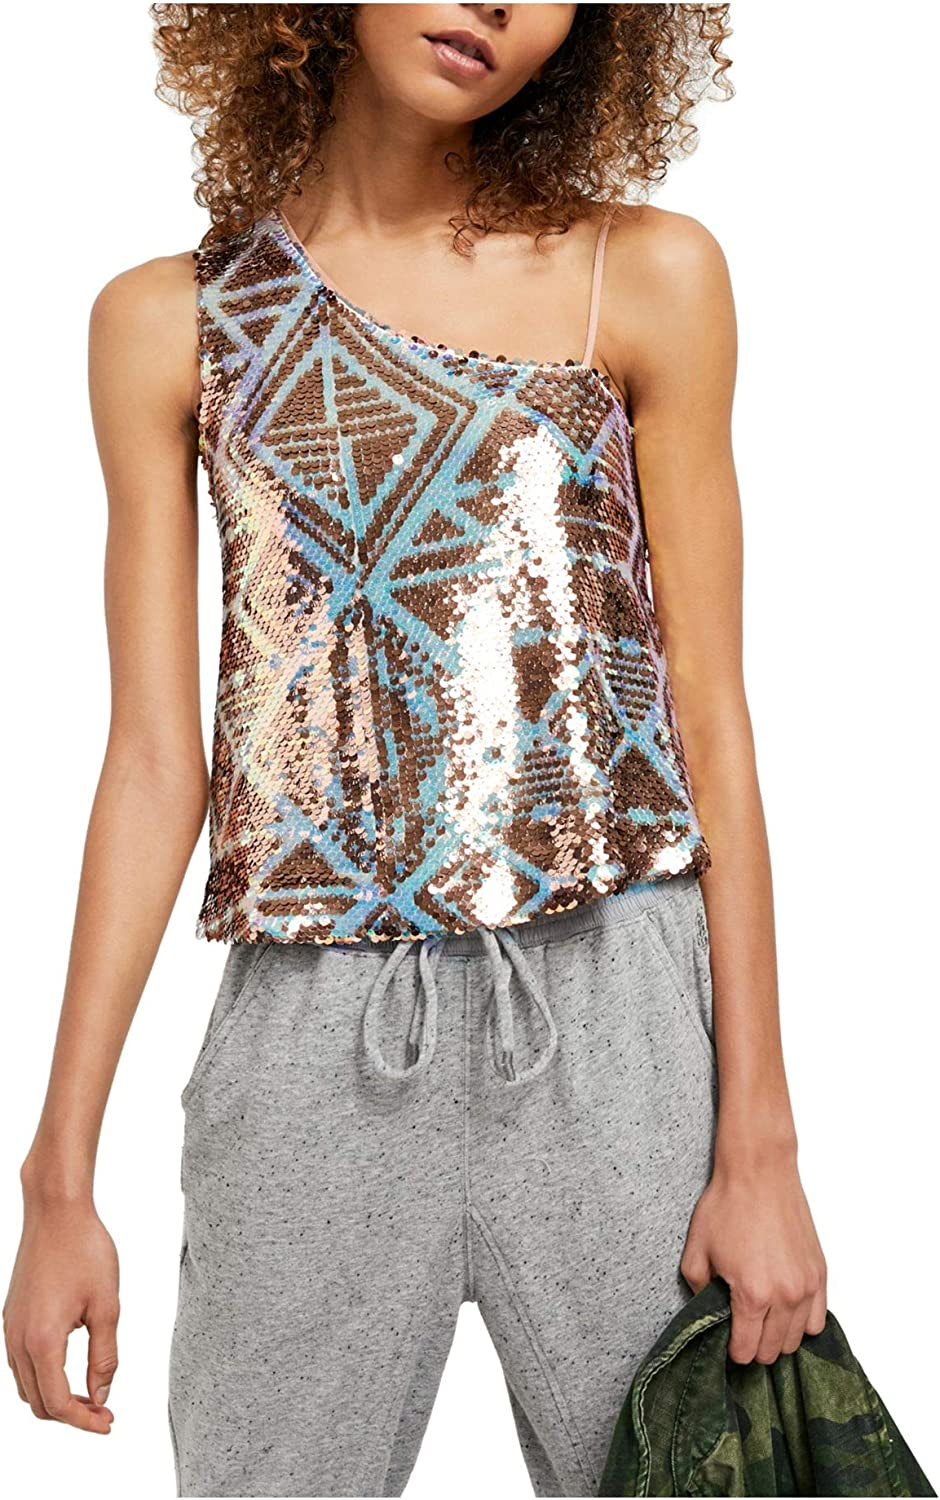 Free People Womens Max 72% OFF Large-scale sale Disco Fever One Sequined Shoulder Tank Top